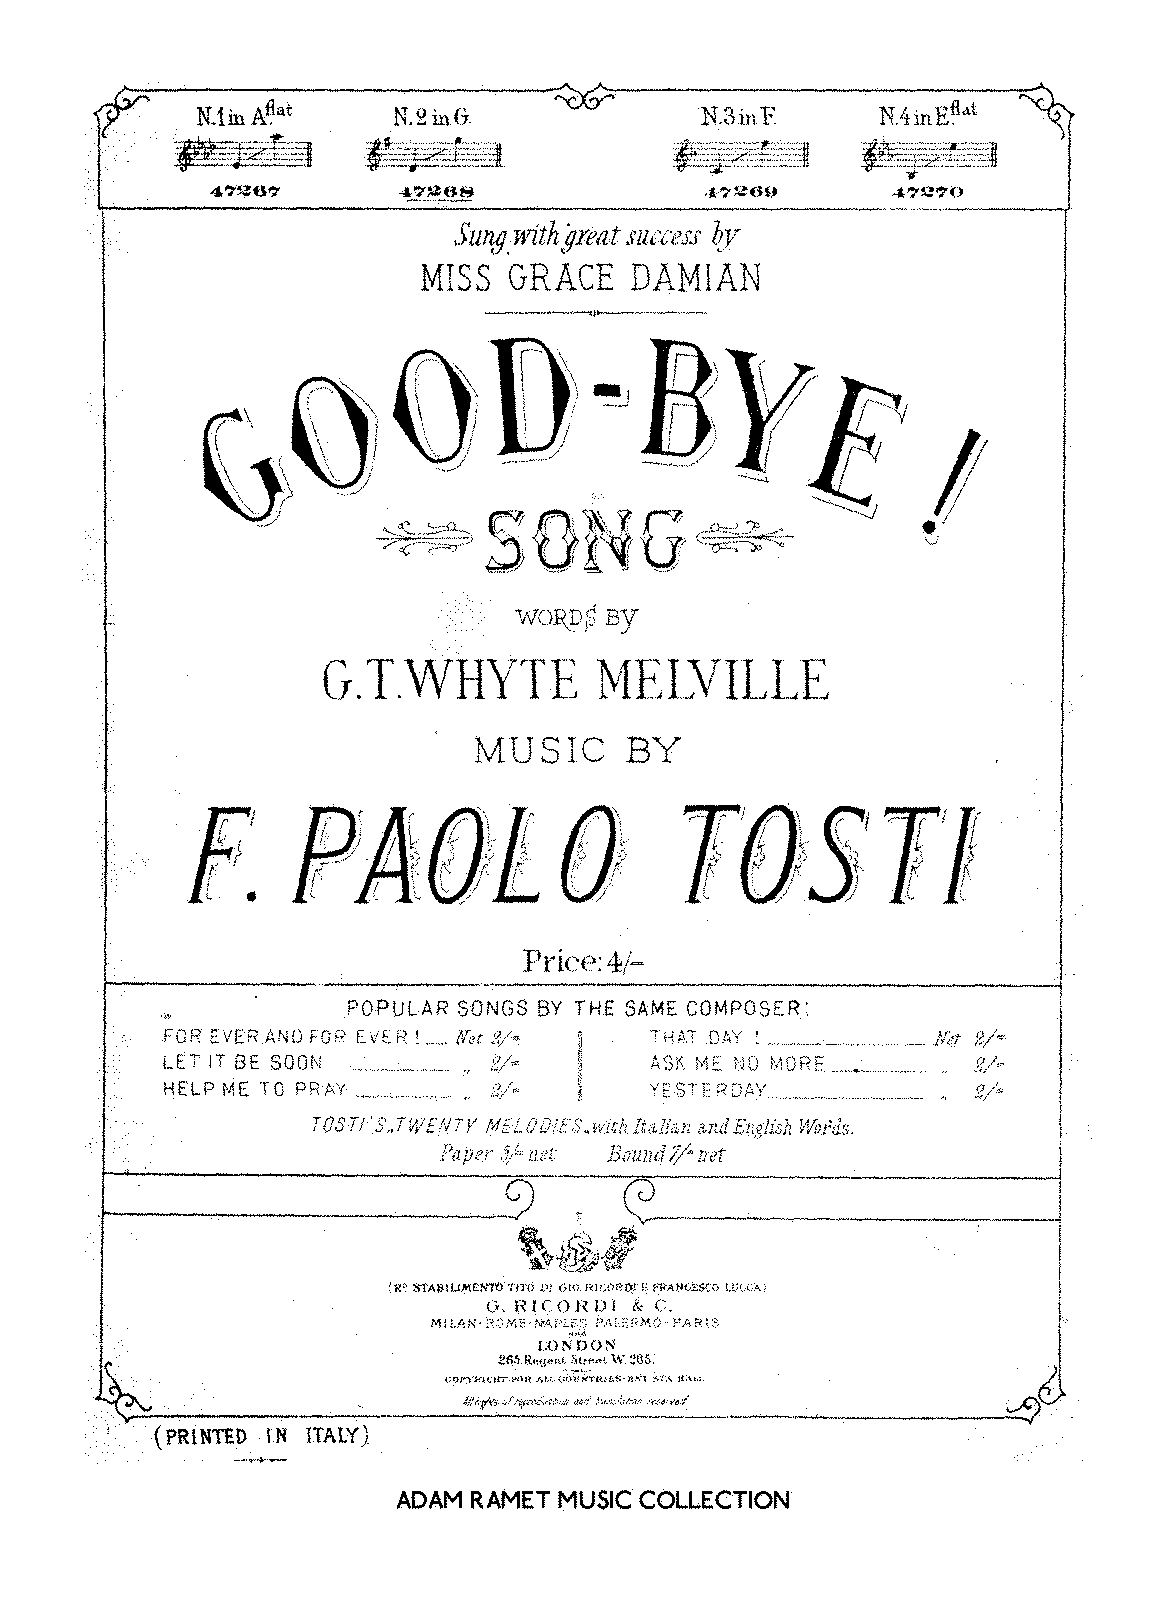 PMLP180919-TOSTI - Goodbye No2 in G edition.pdf